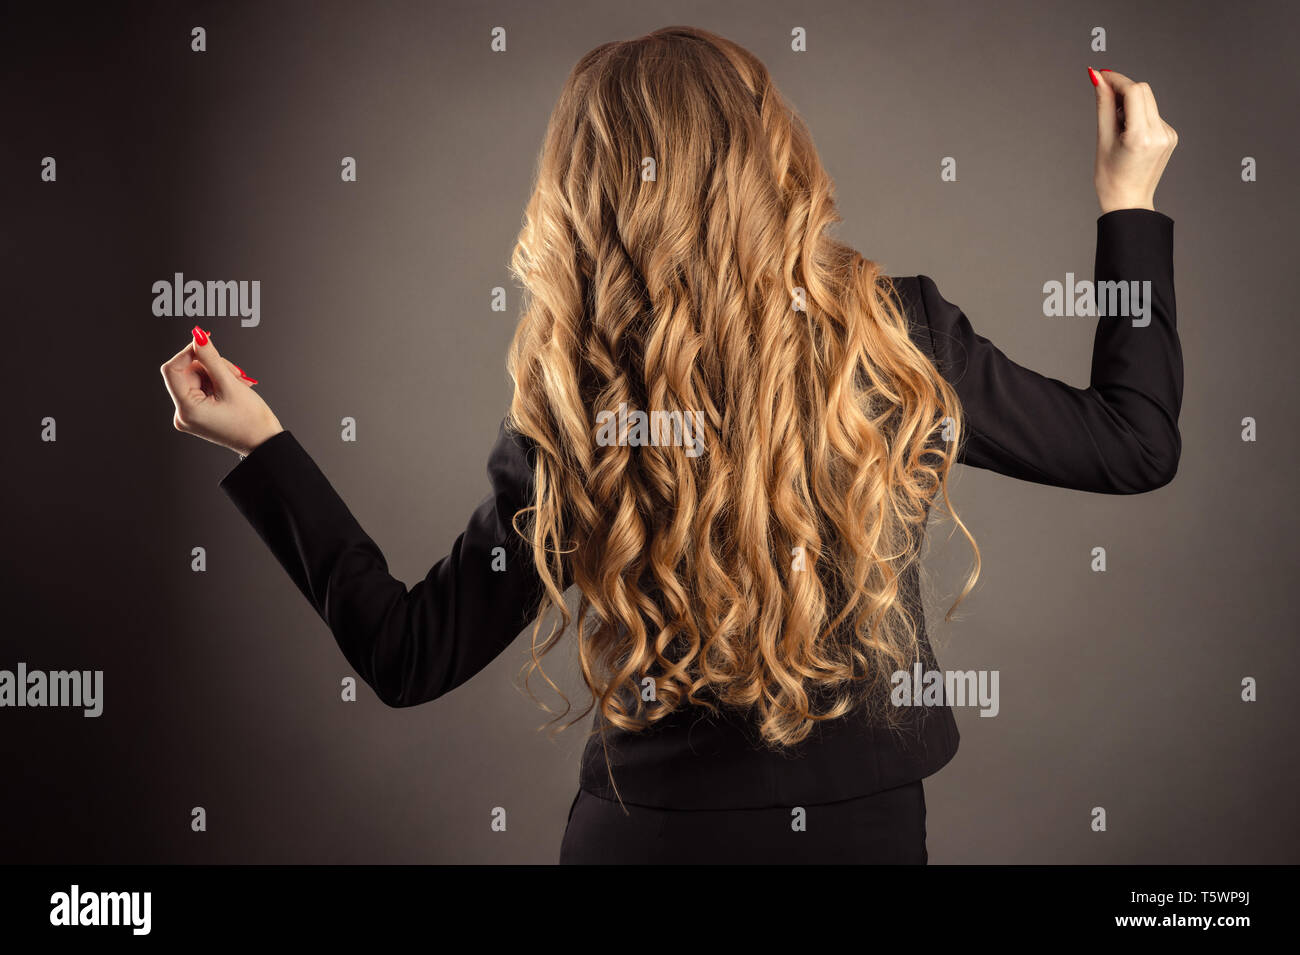 successful business woman with gorgeous wavy hair - Stock Image